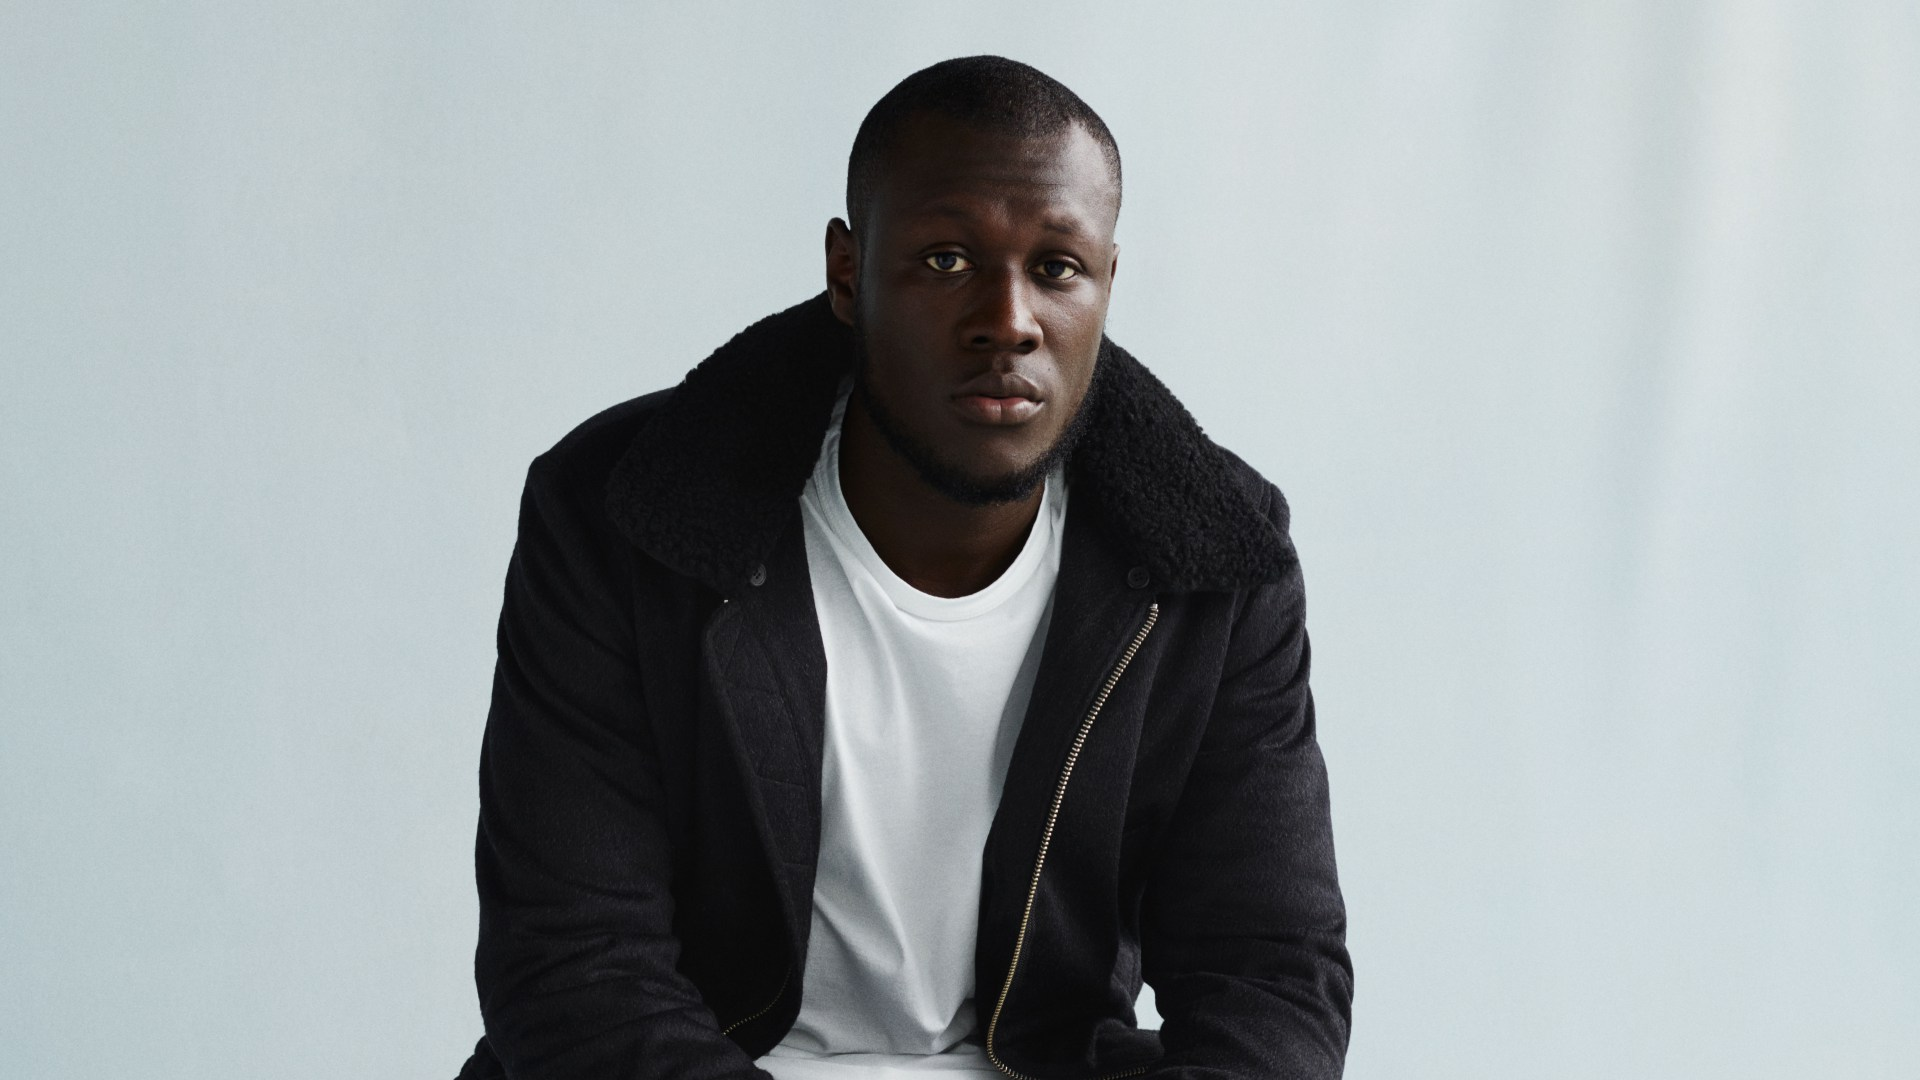 TRNSMT Festival Reveals 2019 Line-Up which sees Stormzy and George Ezra Headlining